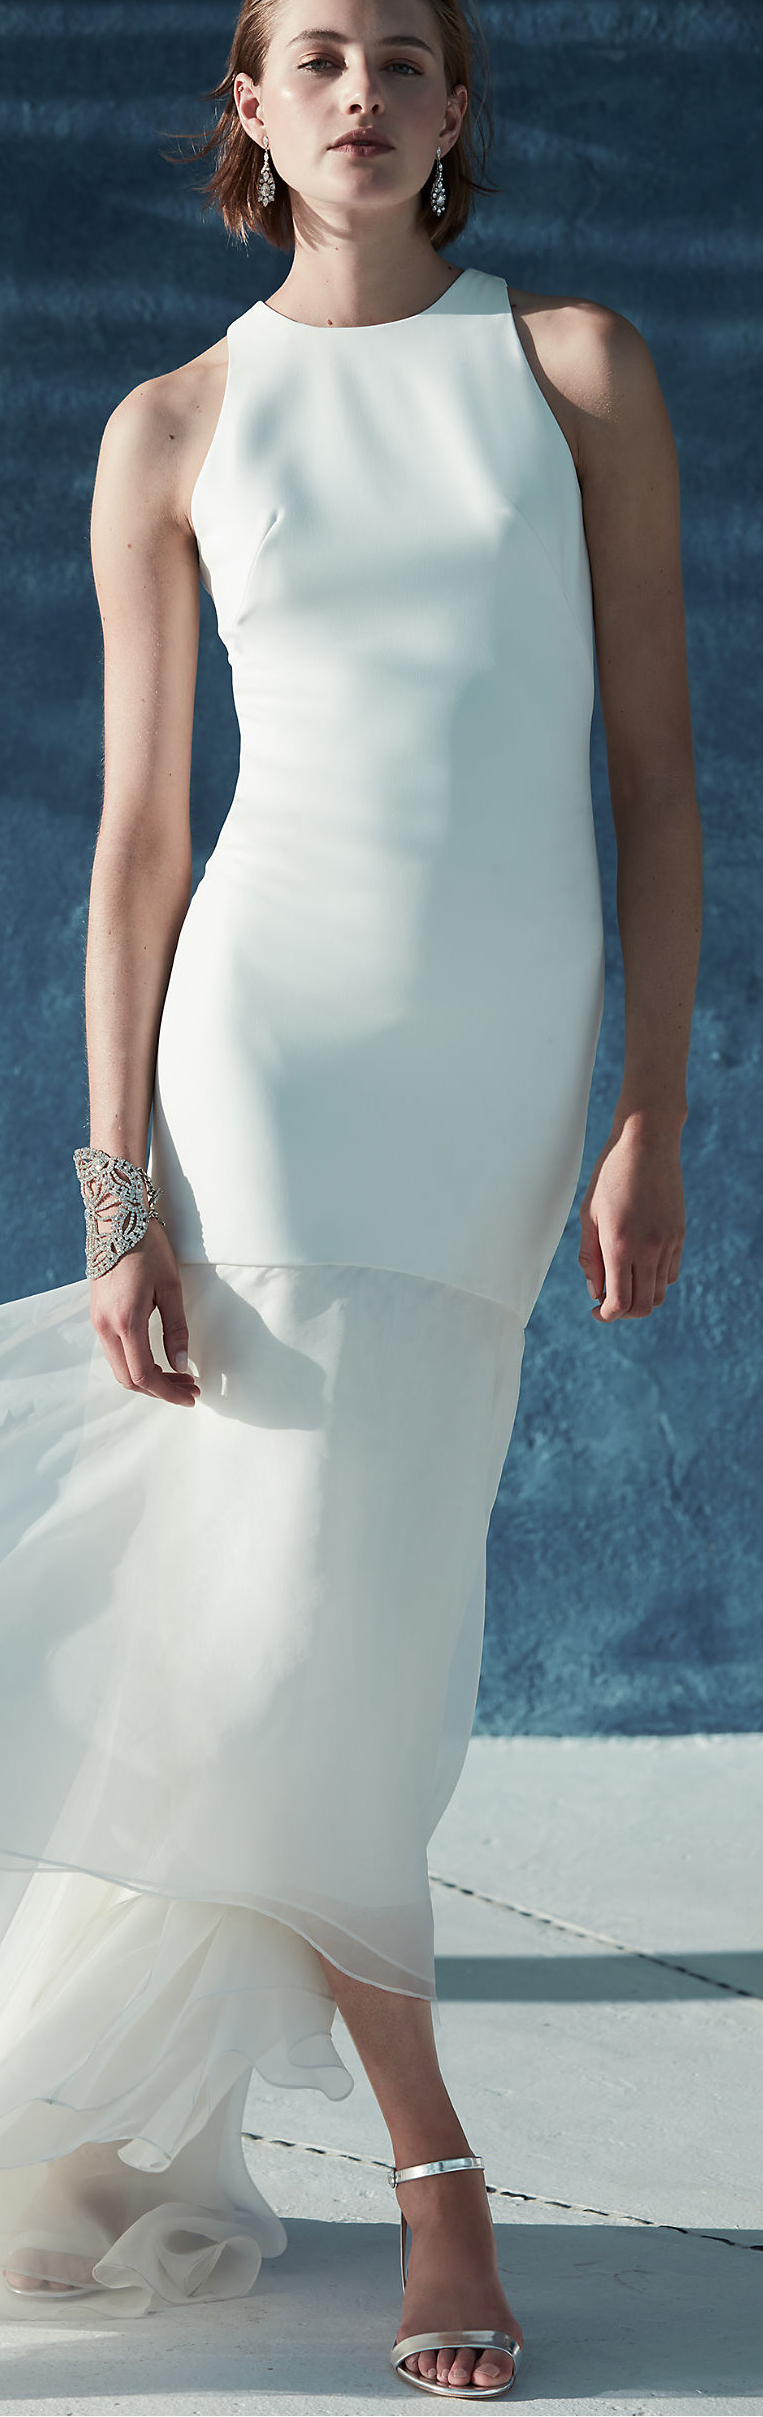 Elle Gown | WEDDING IDEAS | Pinterest | Gowns, White outfits and ...